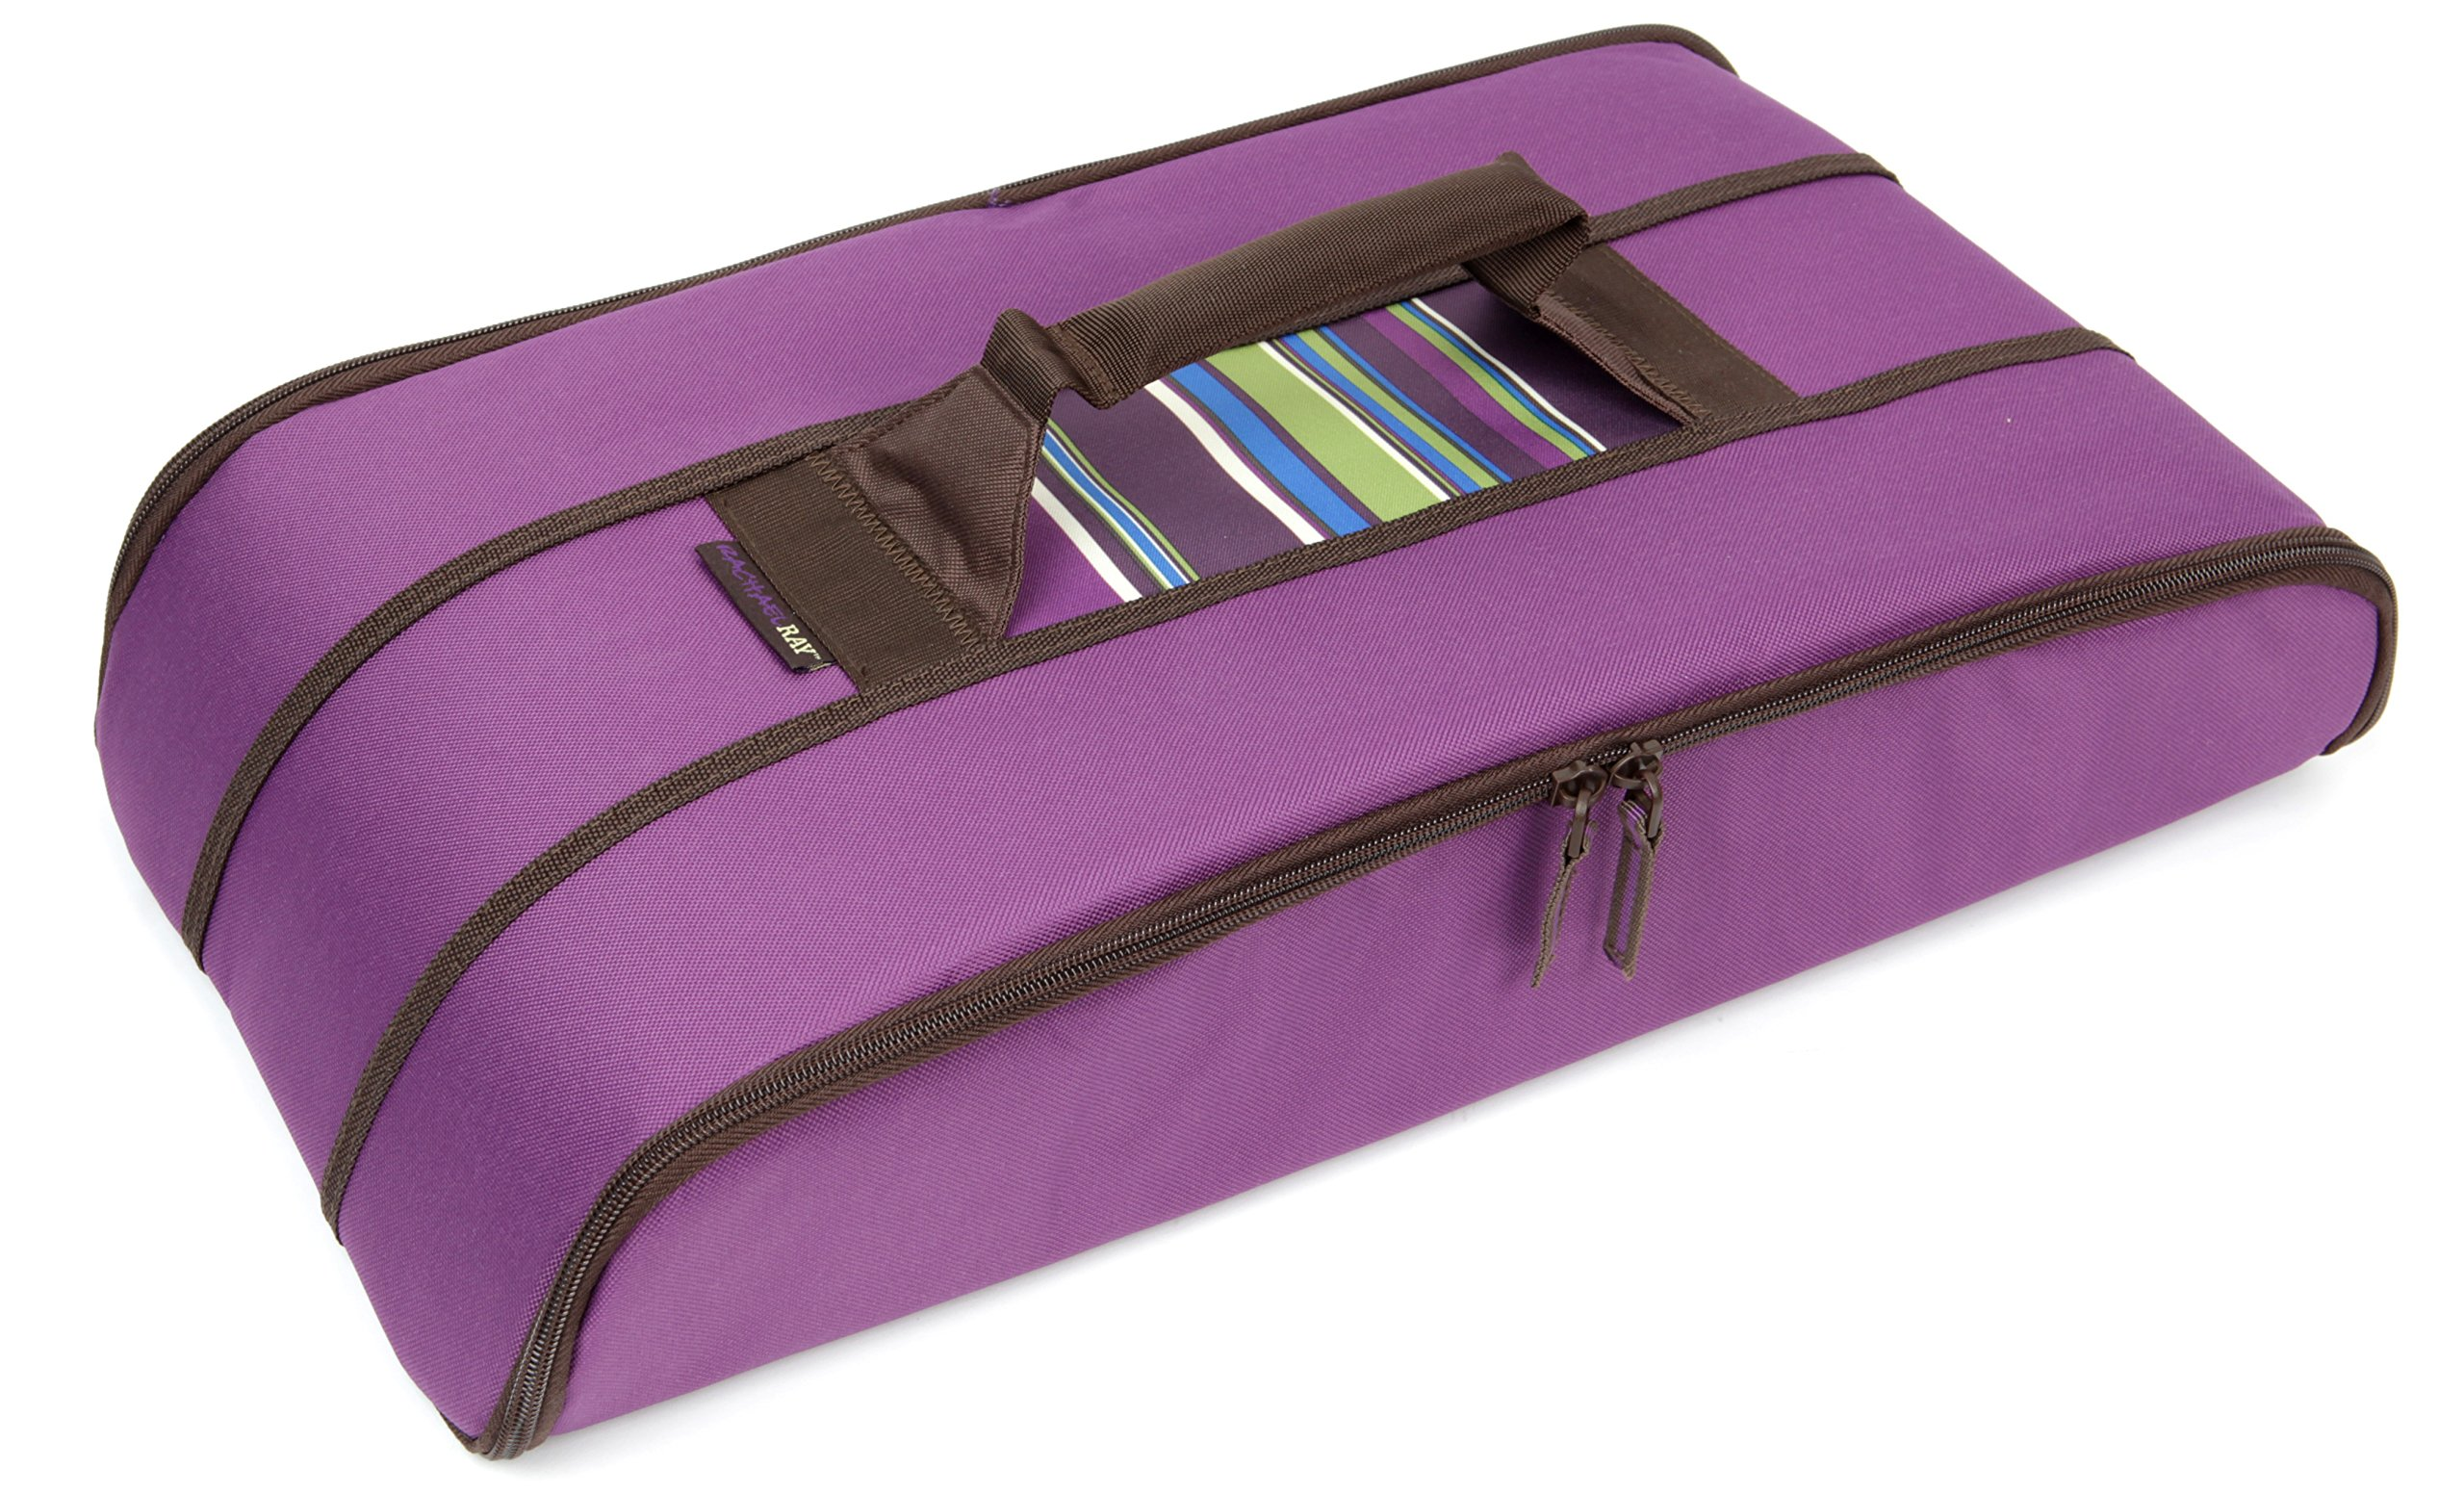 Rachael Ray Stowaway Potlucker, Holds Larger Casseroles / Baking Dishes Up To 10 X 15 Inches, Purple